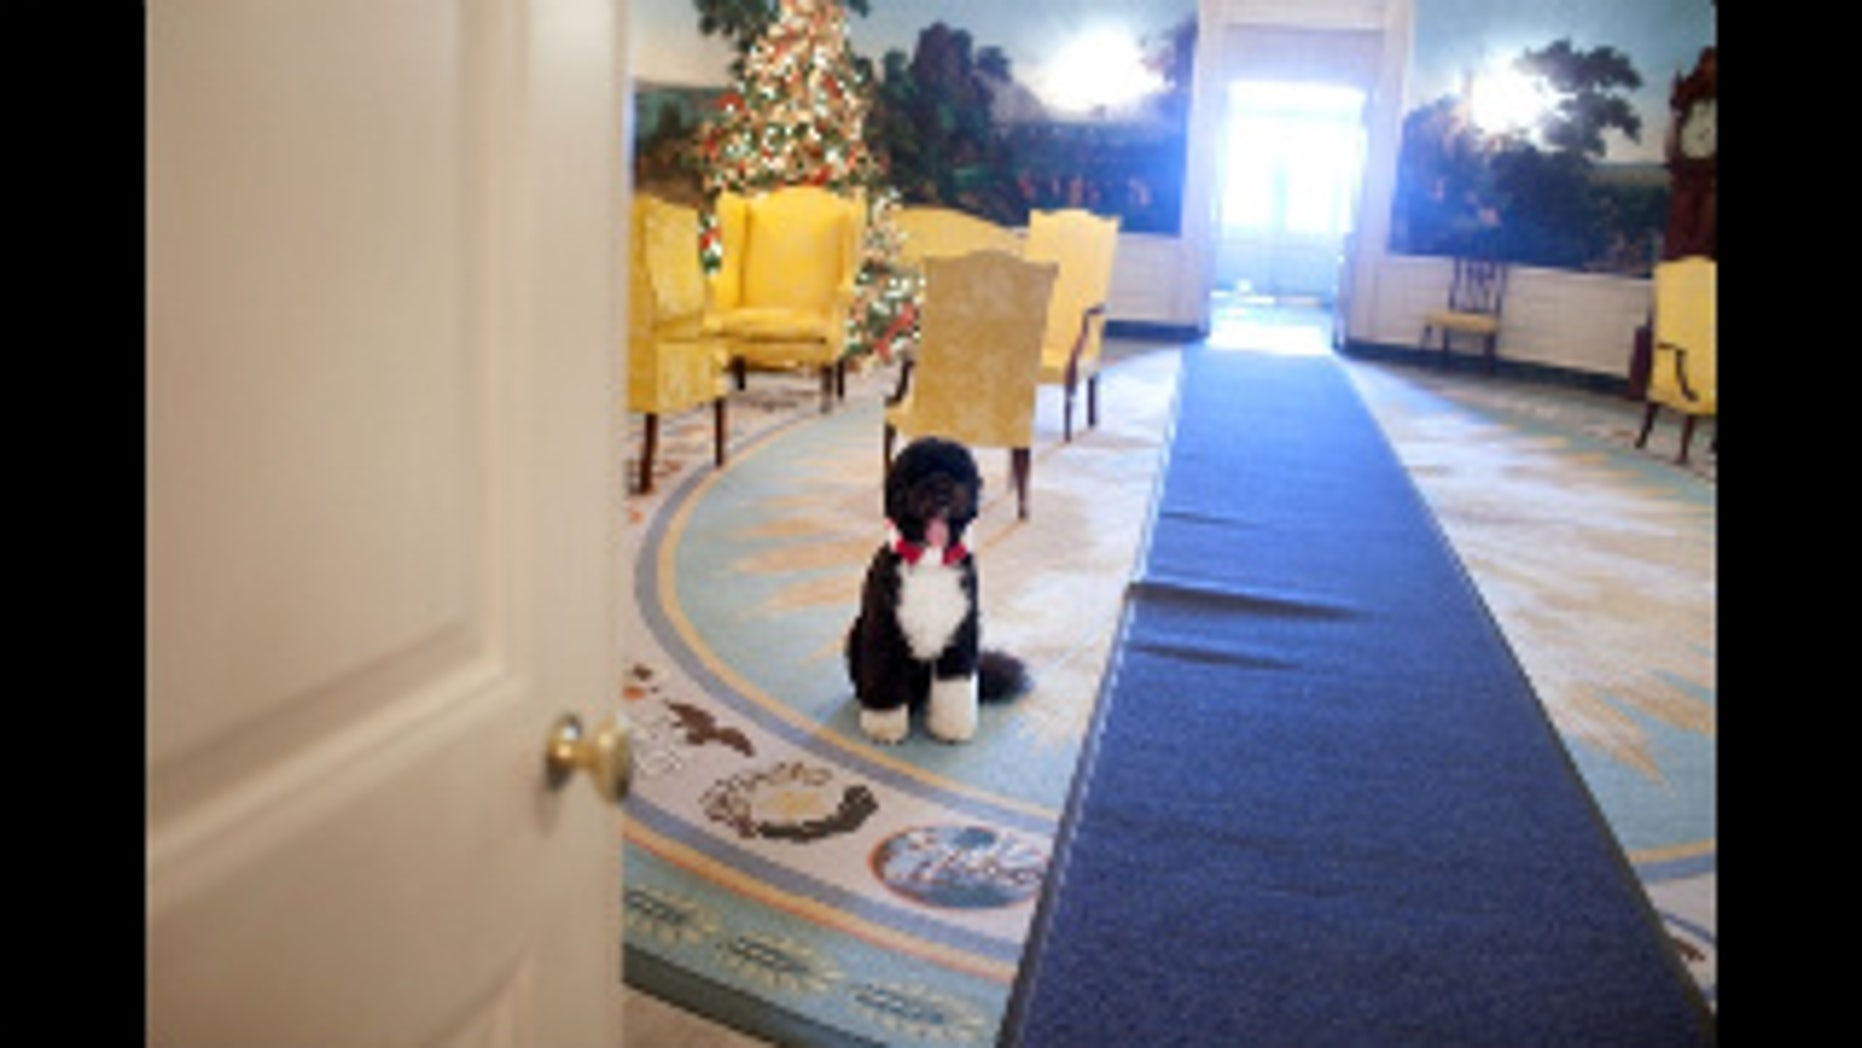 Bo, the Obama family dog, waits near a Christmas tree in the Diplomatic Reception Room of the White House, December 3, 2009. (Official White House Photo by Samantha Appleton)